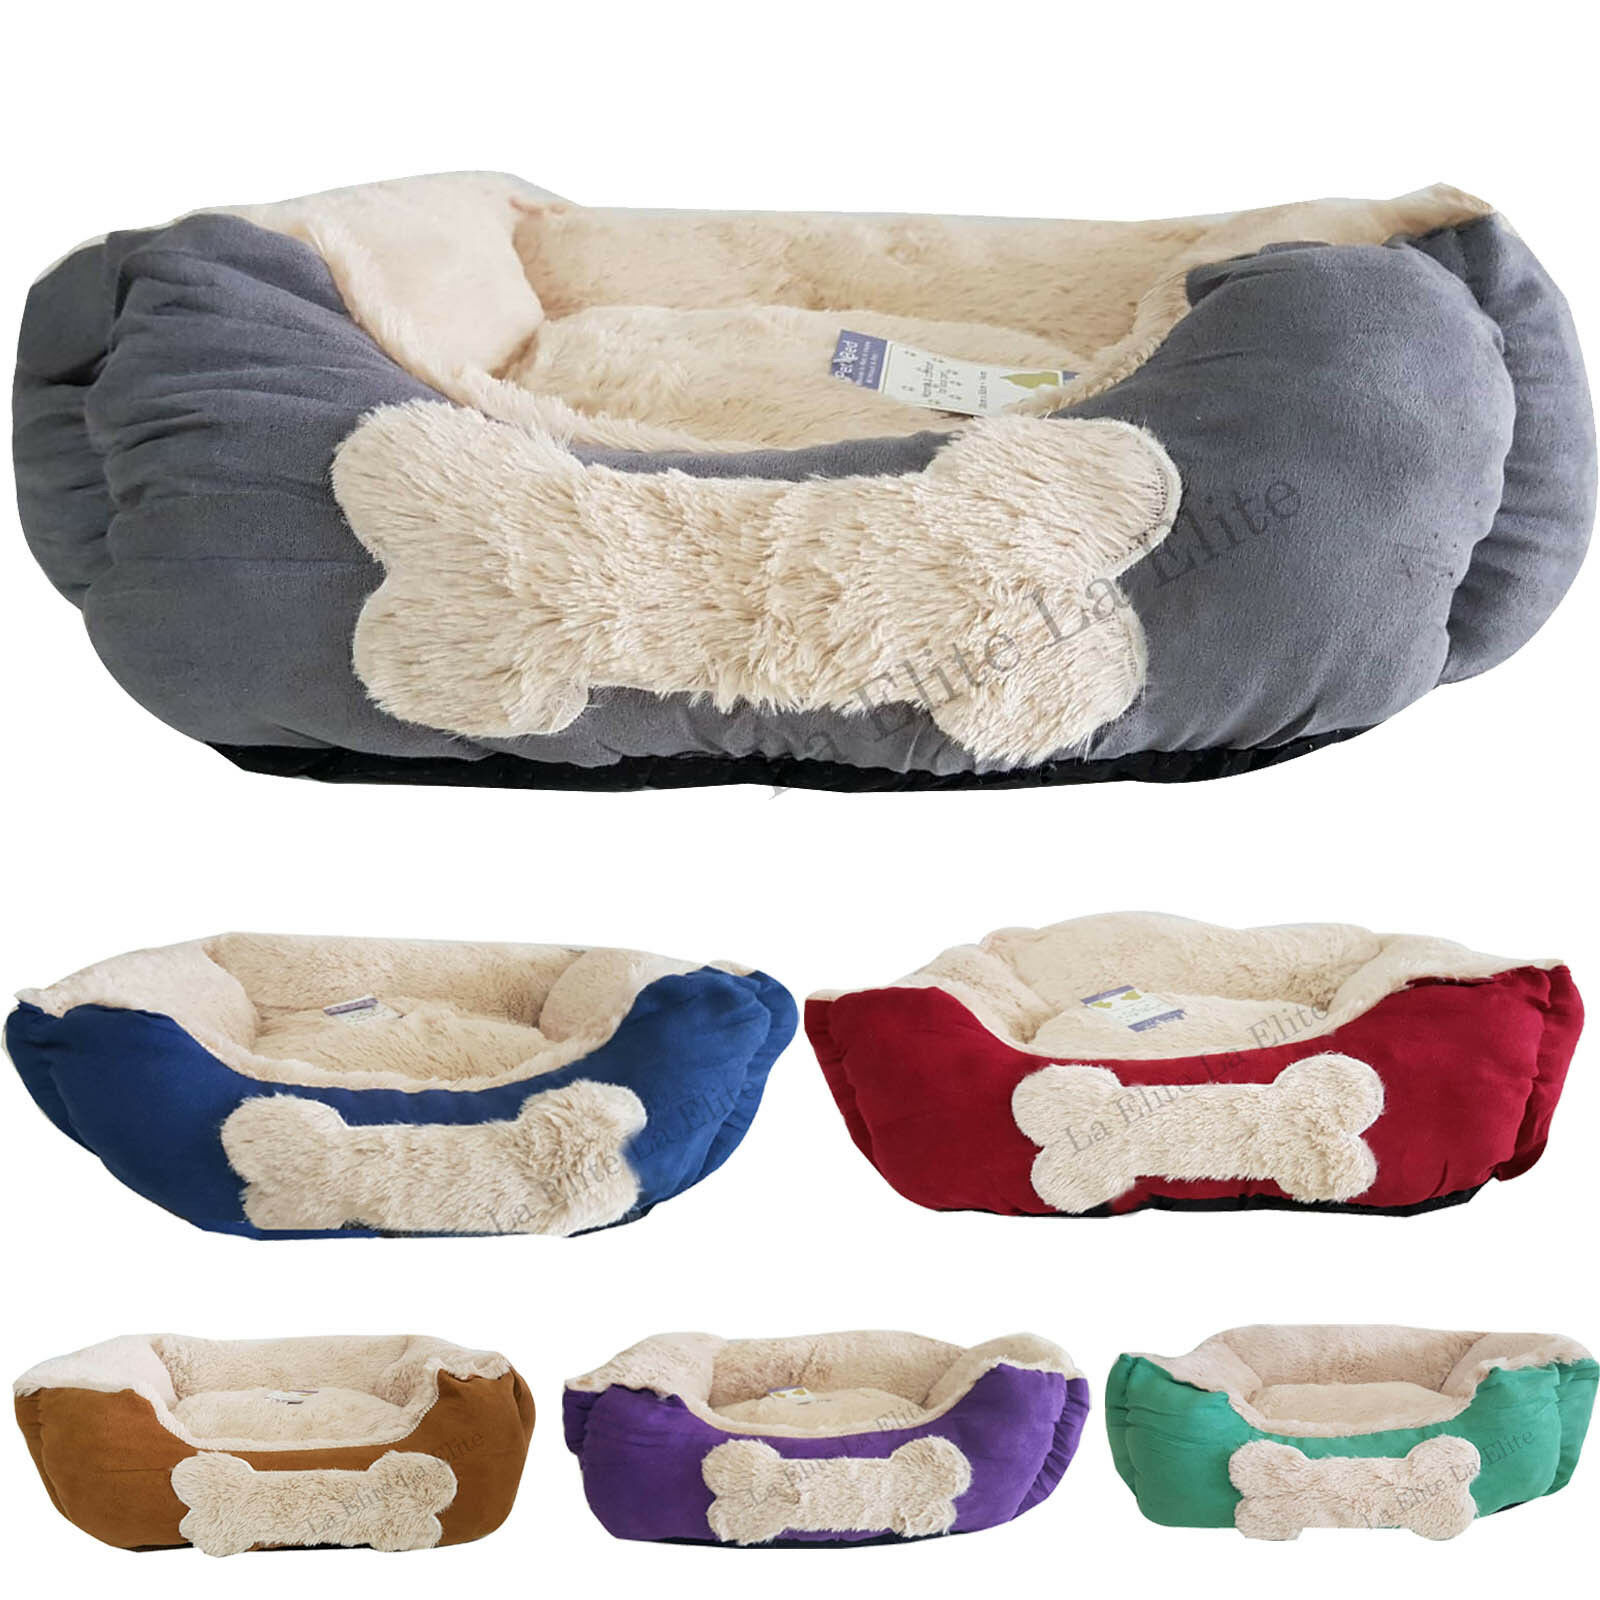 Dogs Bed Large Small Cat Sofa Pet Basket Cushion Fleece Kitten Puppy Warm Mat